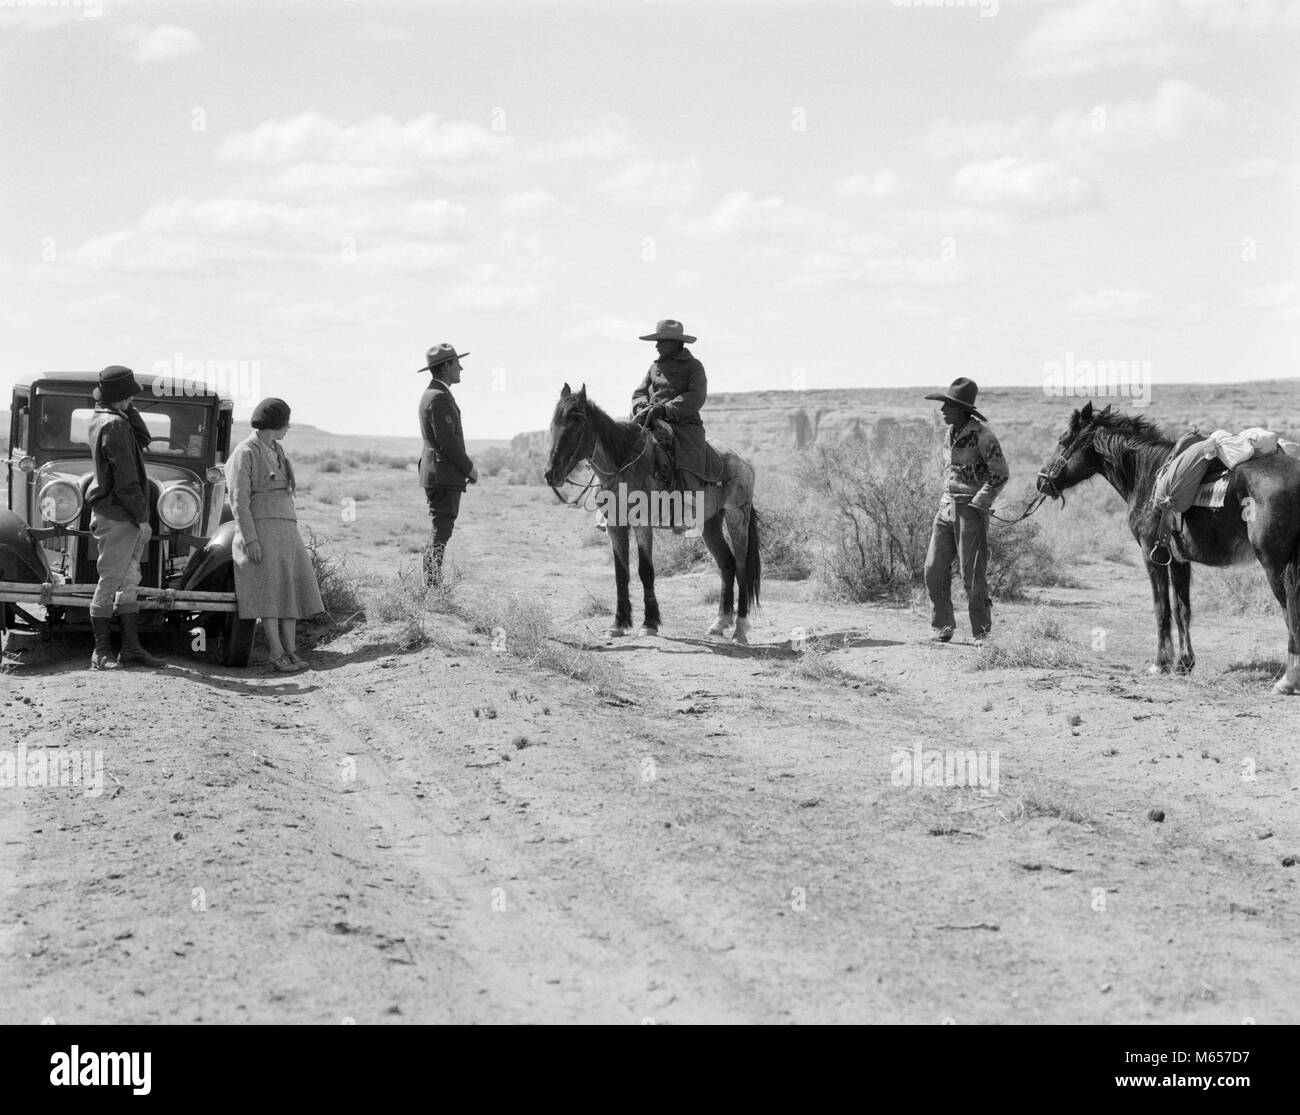 1930s TWO NAVAJO MEN WITH PONIES STOP TO SPEAK TO PARK RANGER WITH TWO WOMEN TOURISTS - i1188 HAR001 HARS AUTOMOBILE - Stock Image